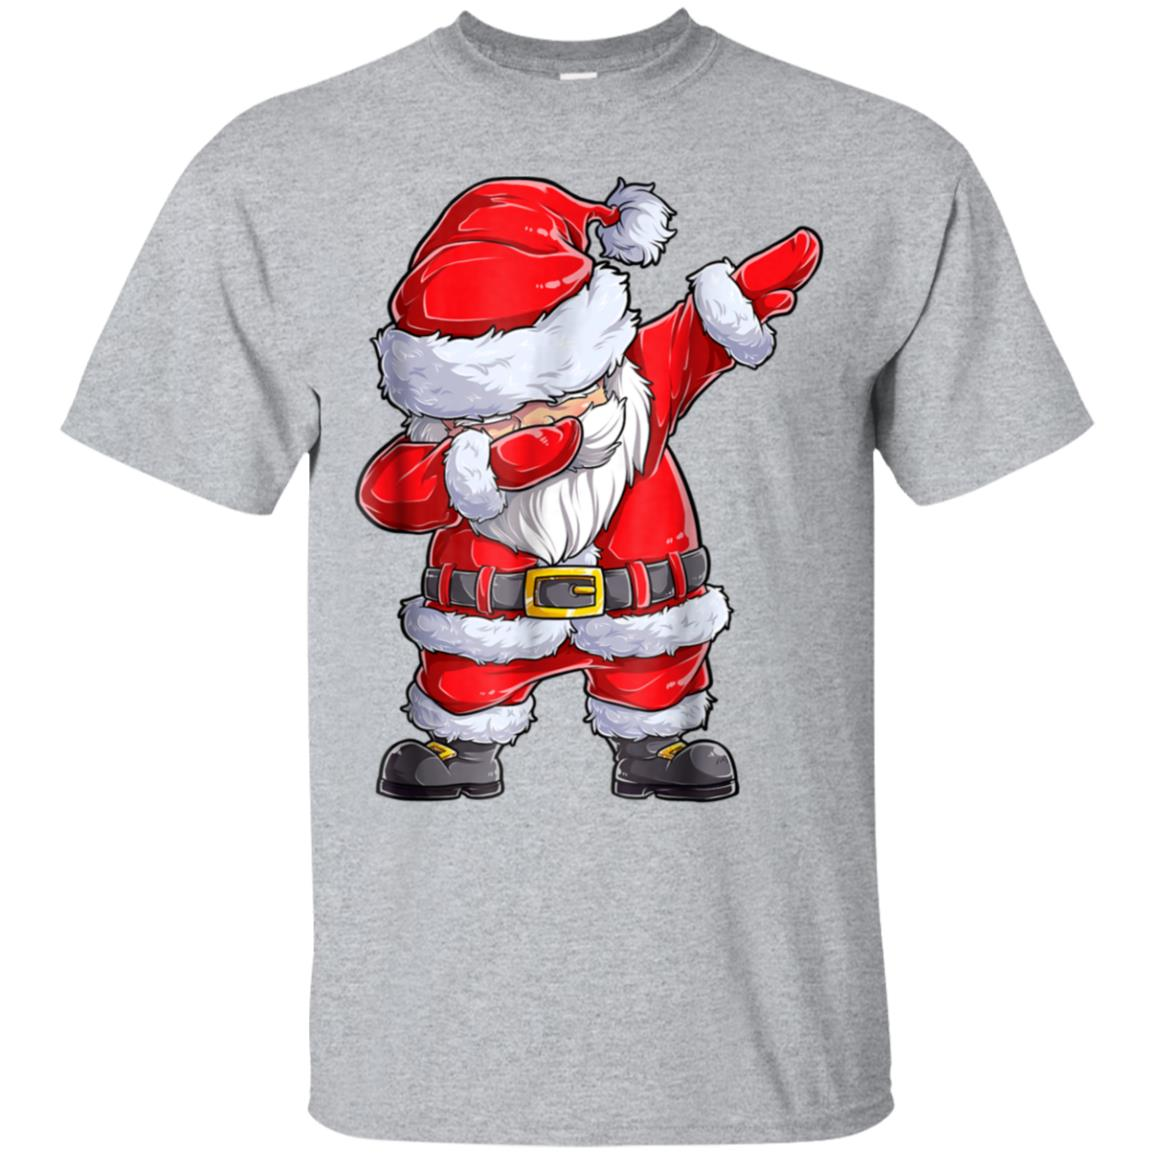 Dabbing Santa Shirt Christmas Boys Kids Men Xmas Gifts Tees 99promocode